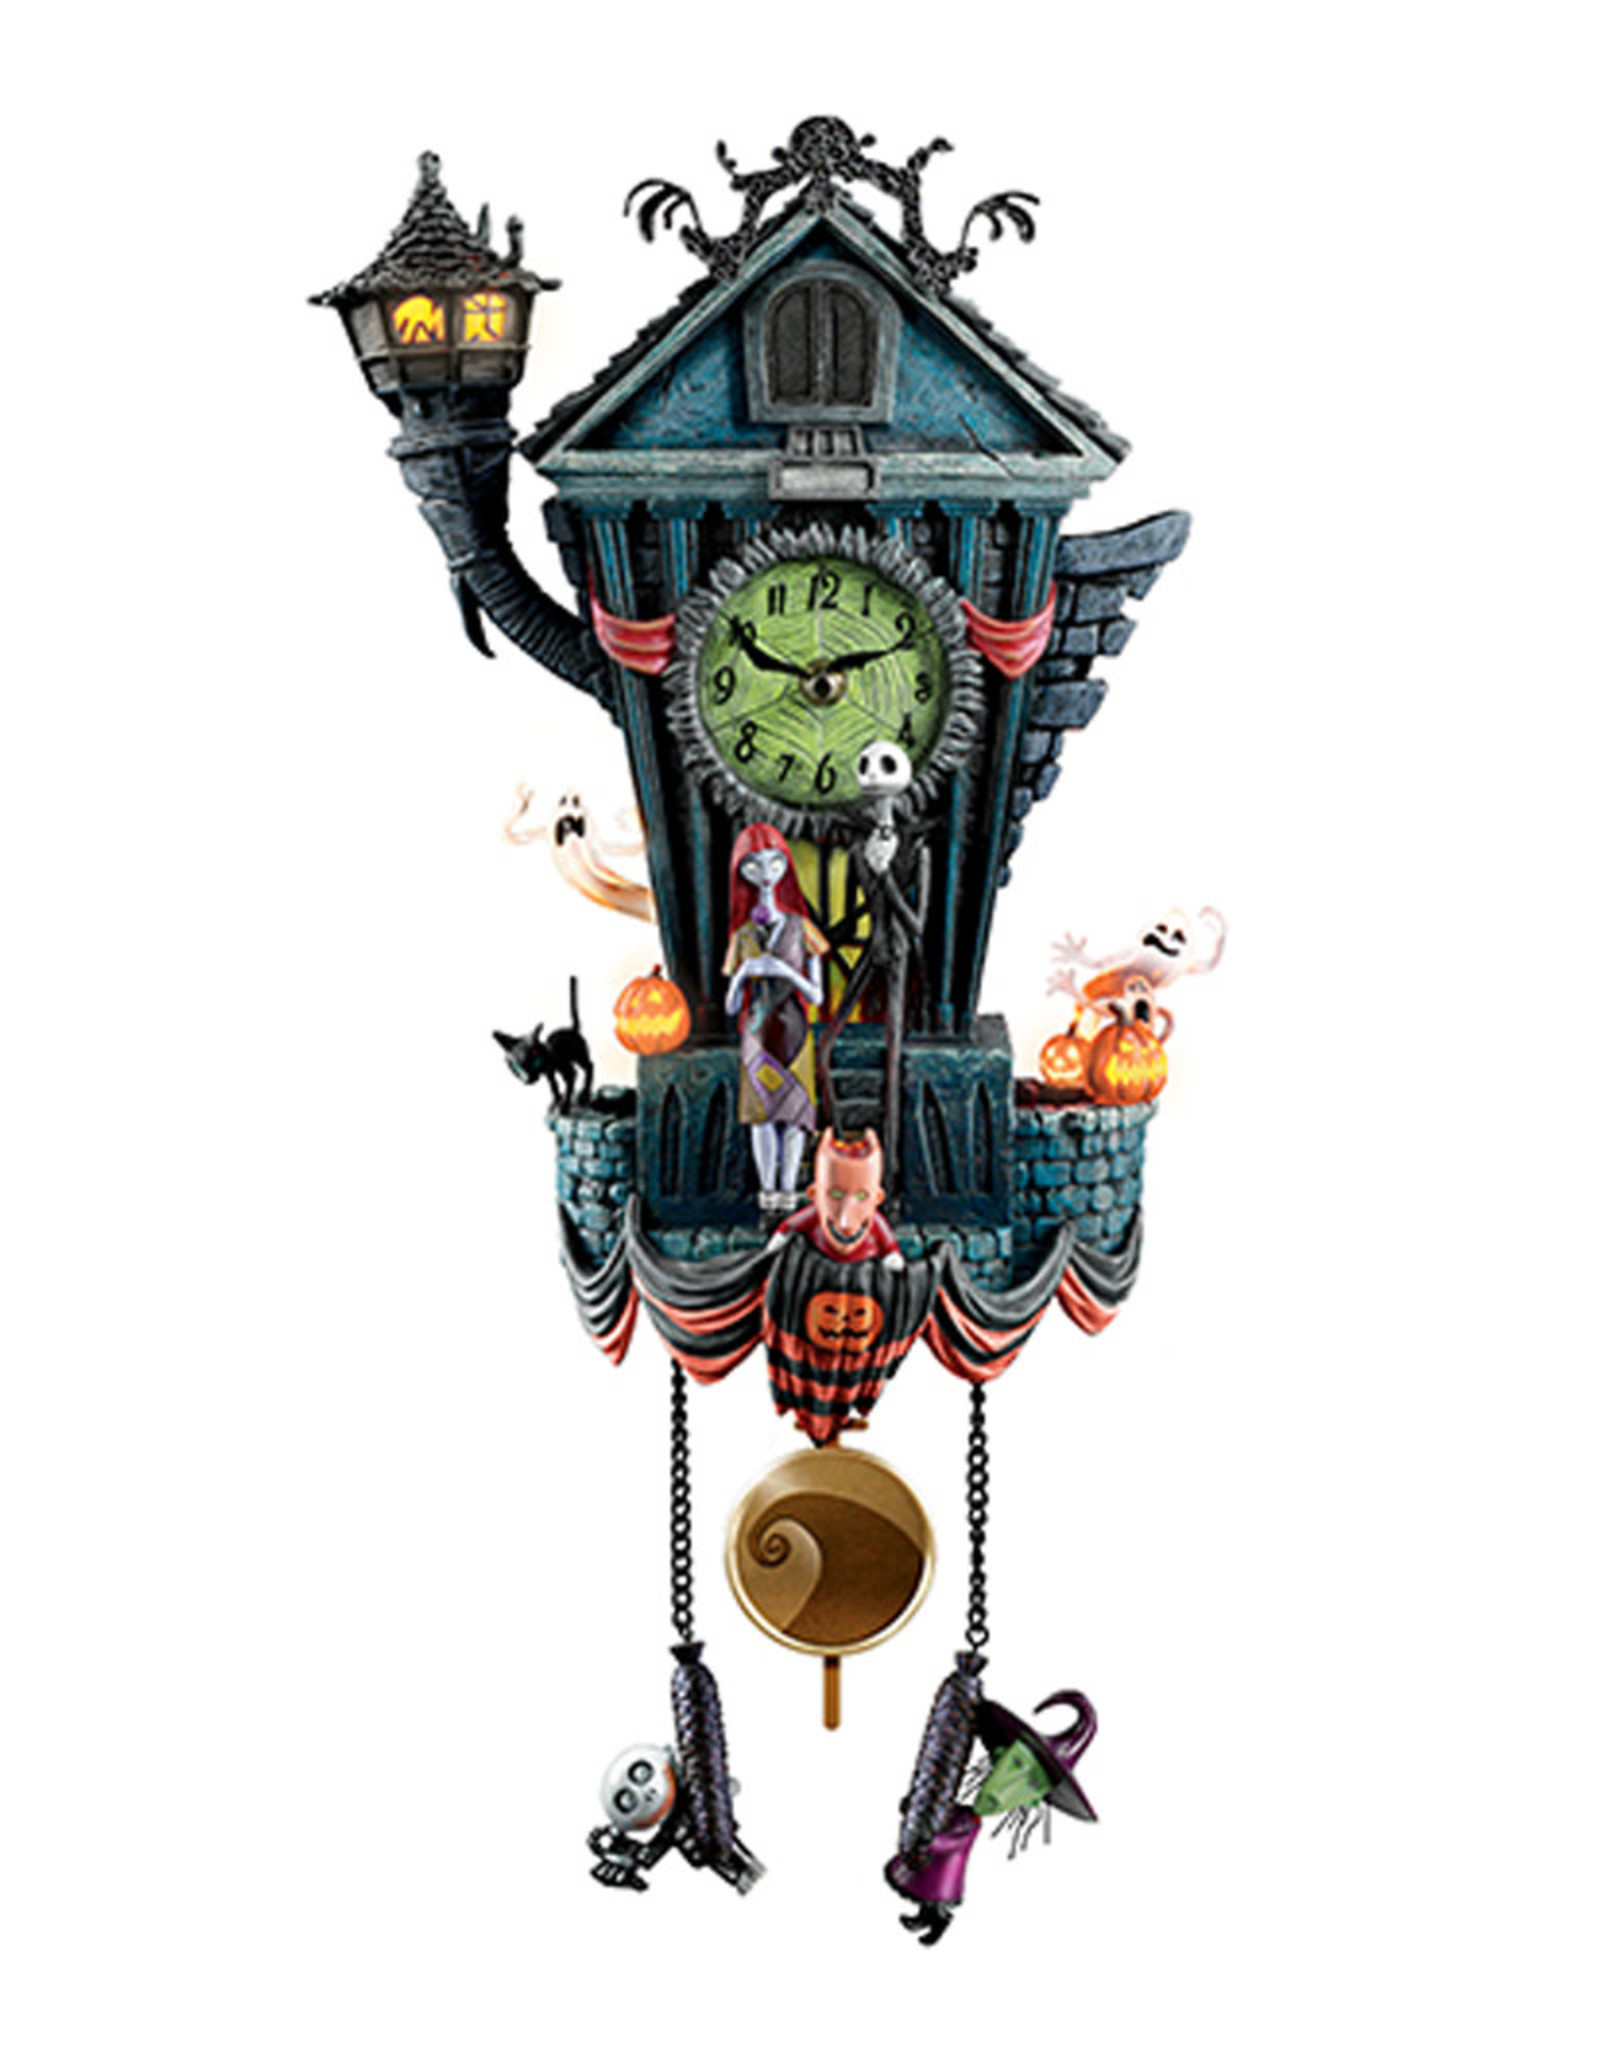 The Nightmare Before Christmas The Nightmare before Christmas ( Animated Clock )